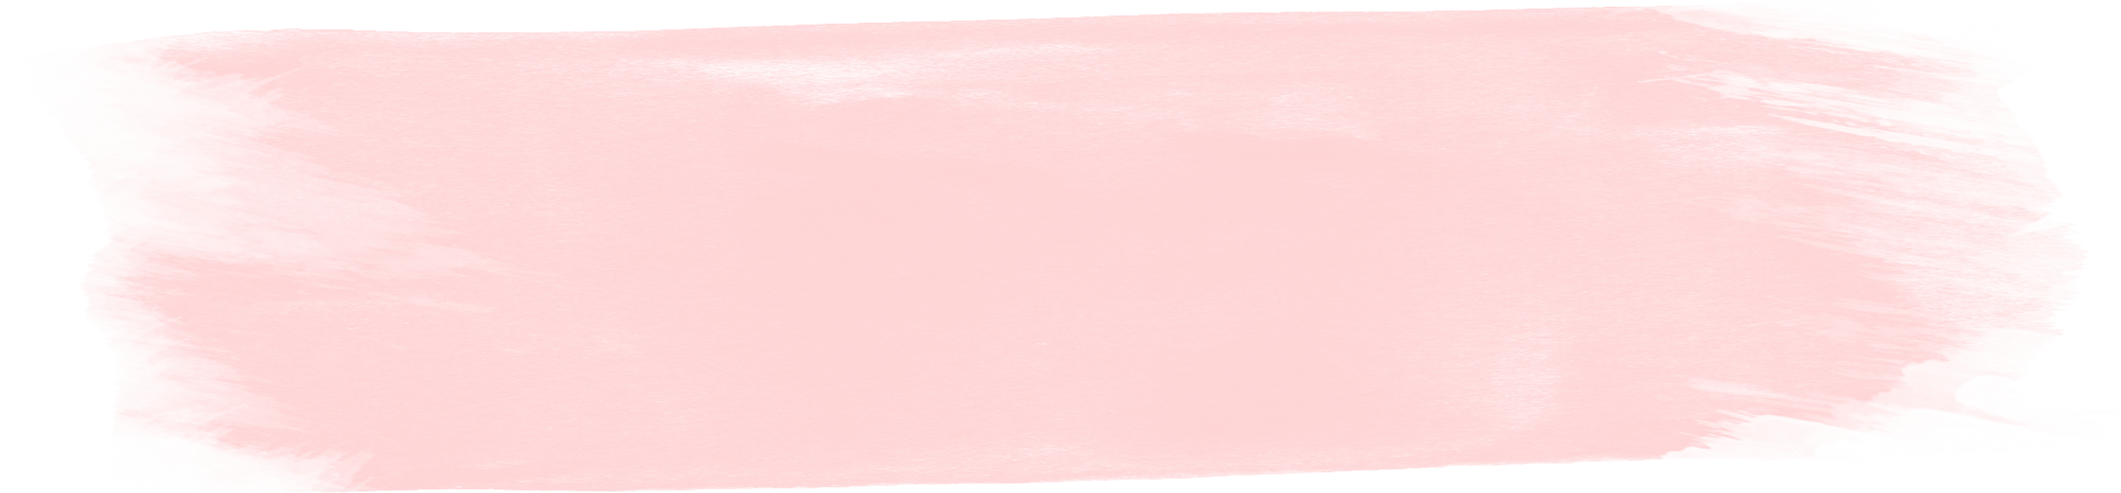 Peach-Canopy-Brush-Stroke (10).png